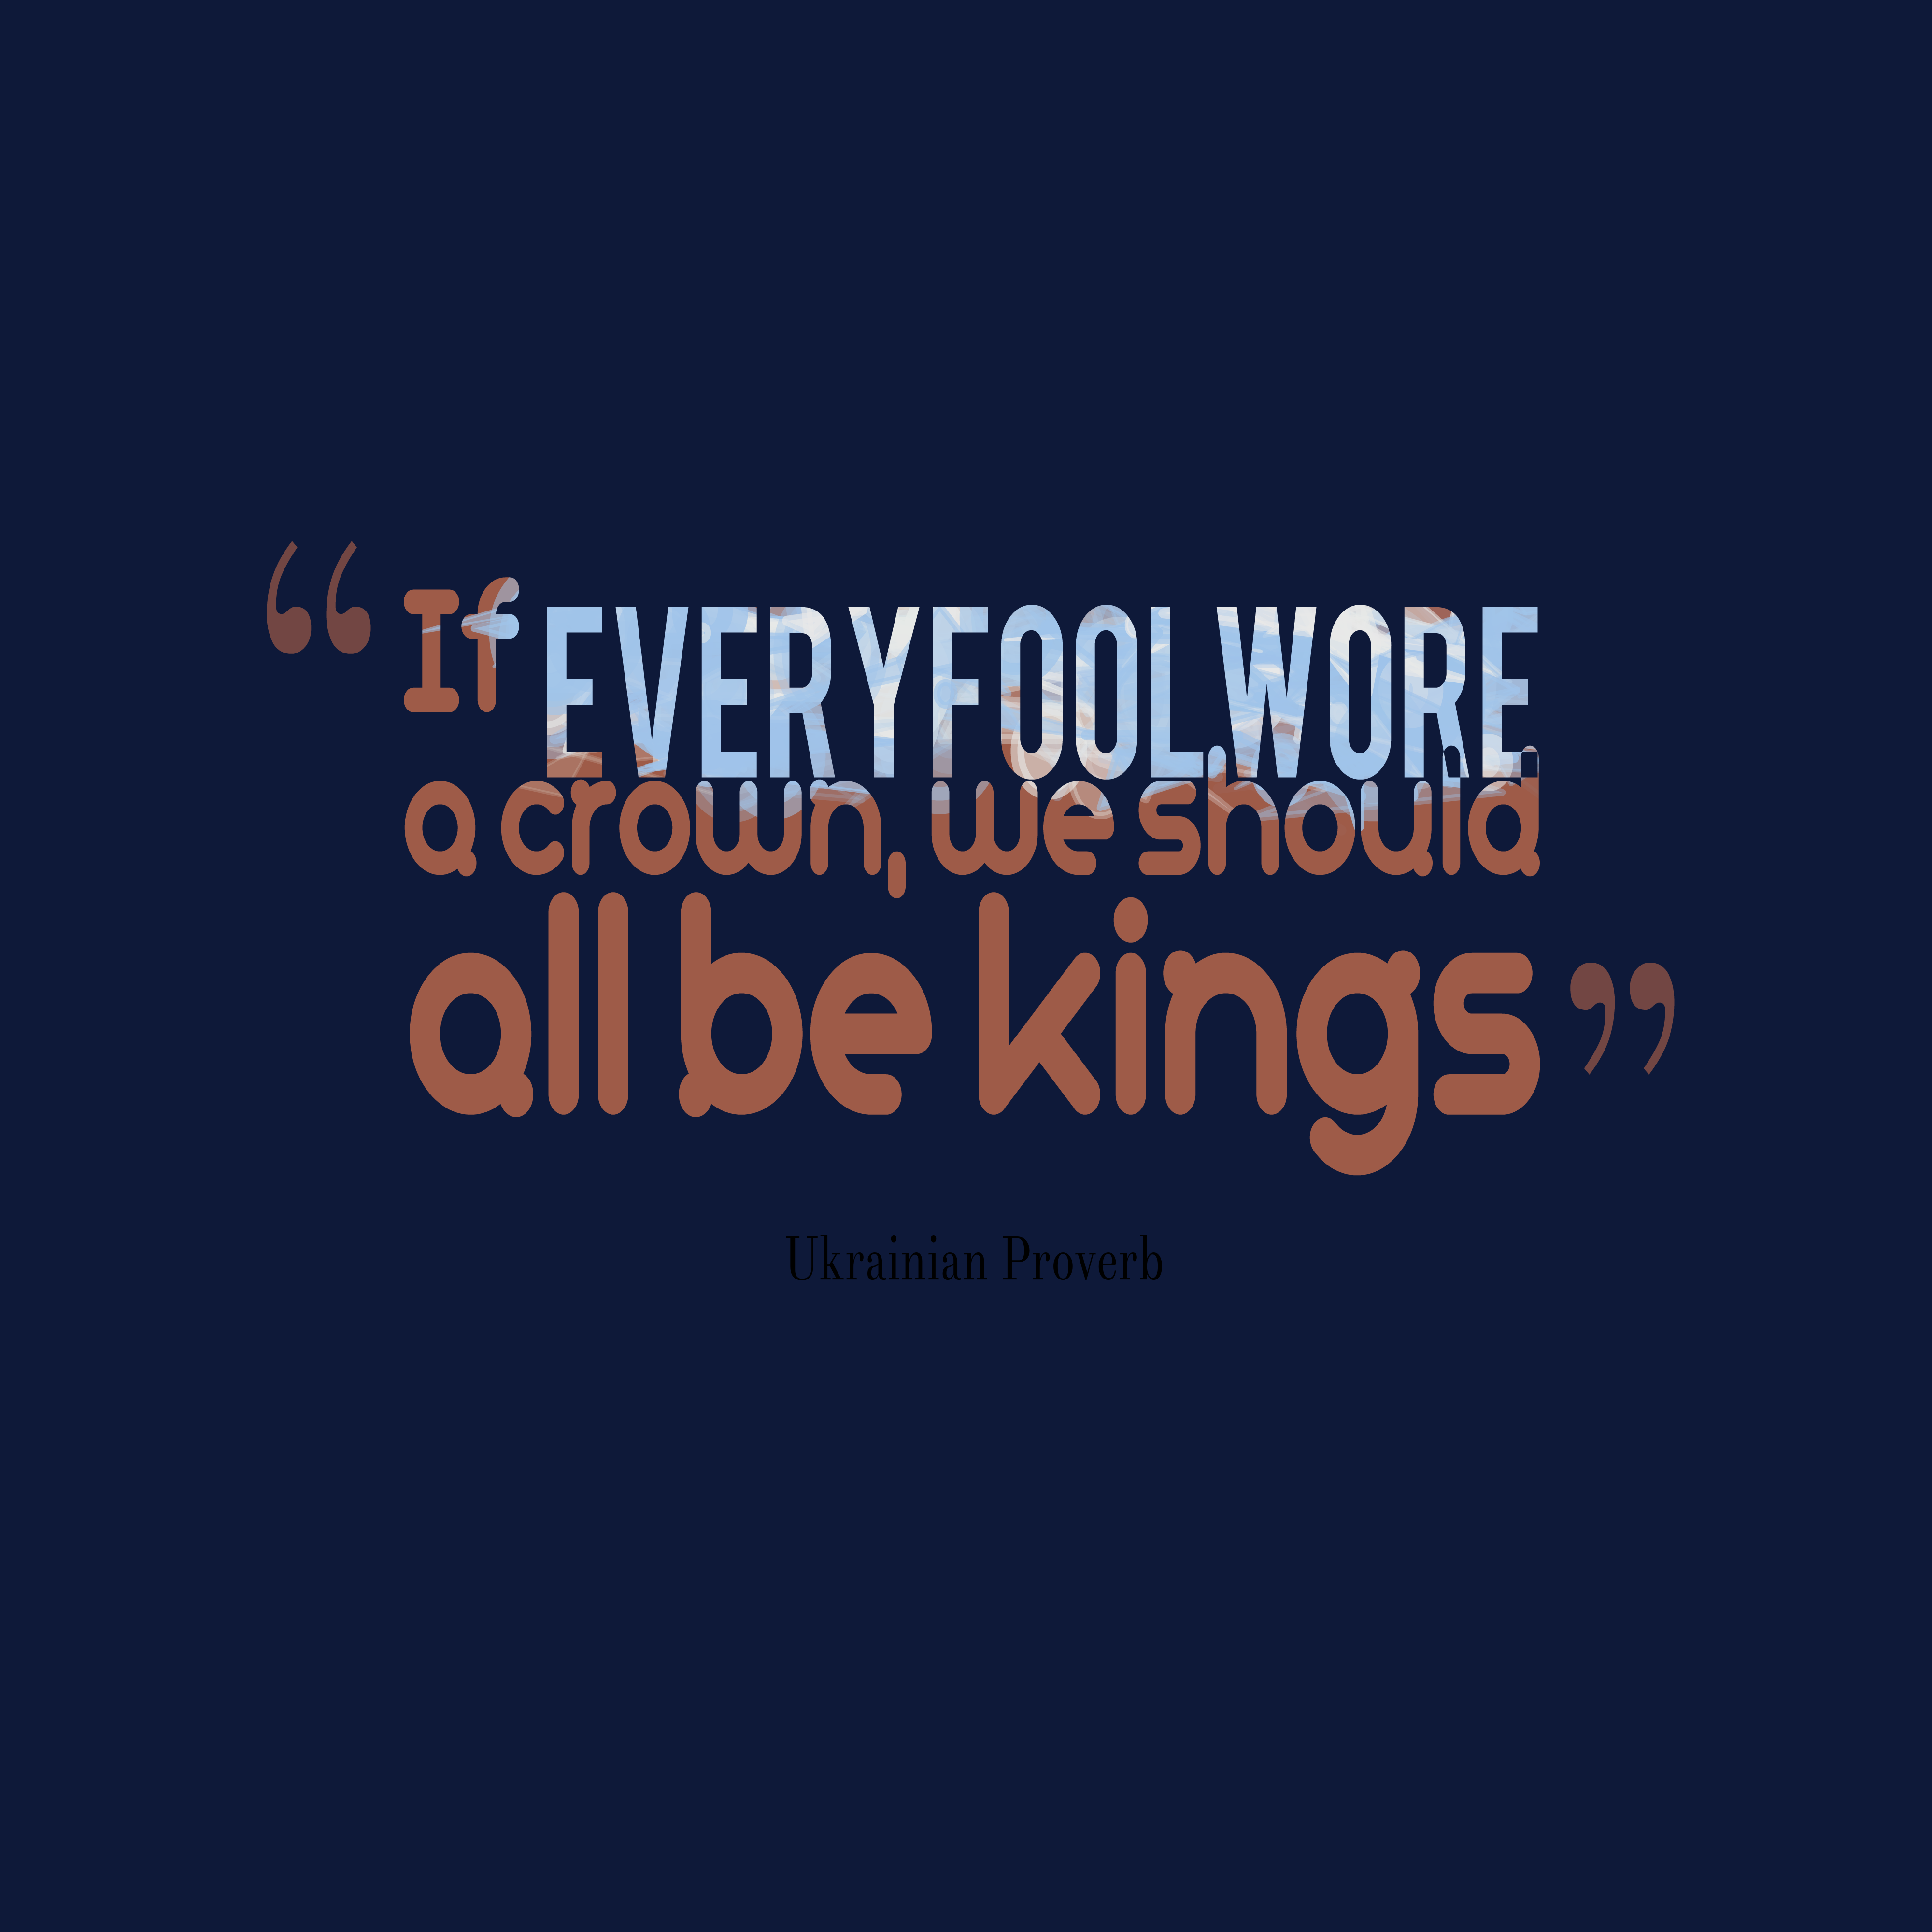 Quotes image of If every fool wore a crown, we should all be kings